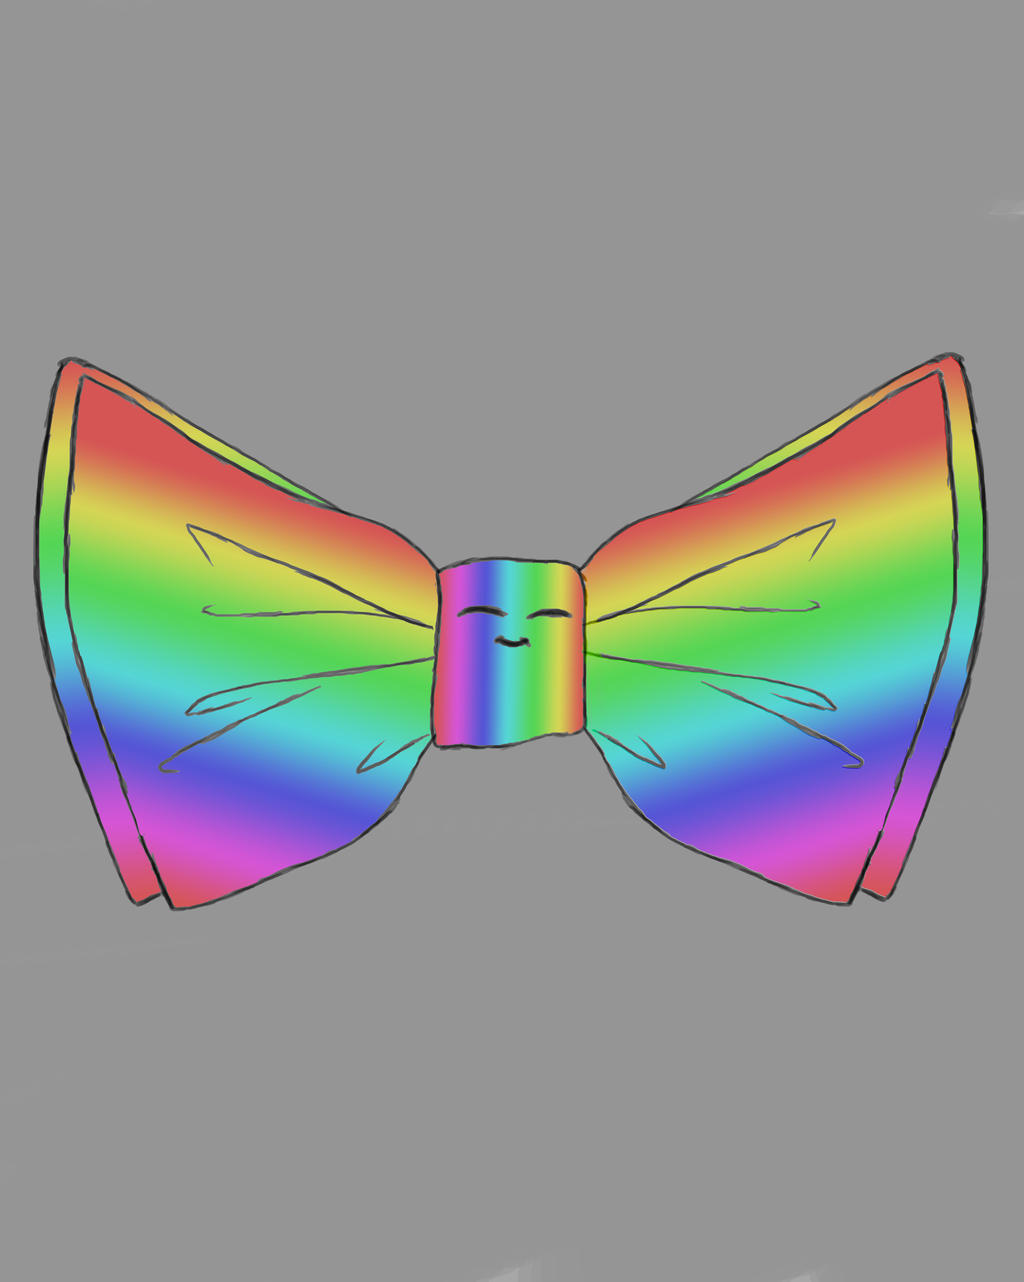 Bowtie Daily sketch #690 by GothicVampireFreak